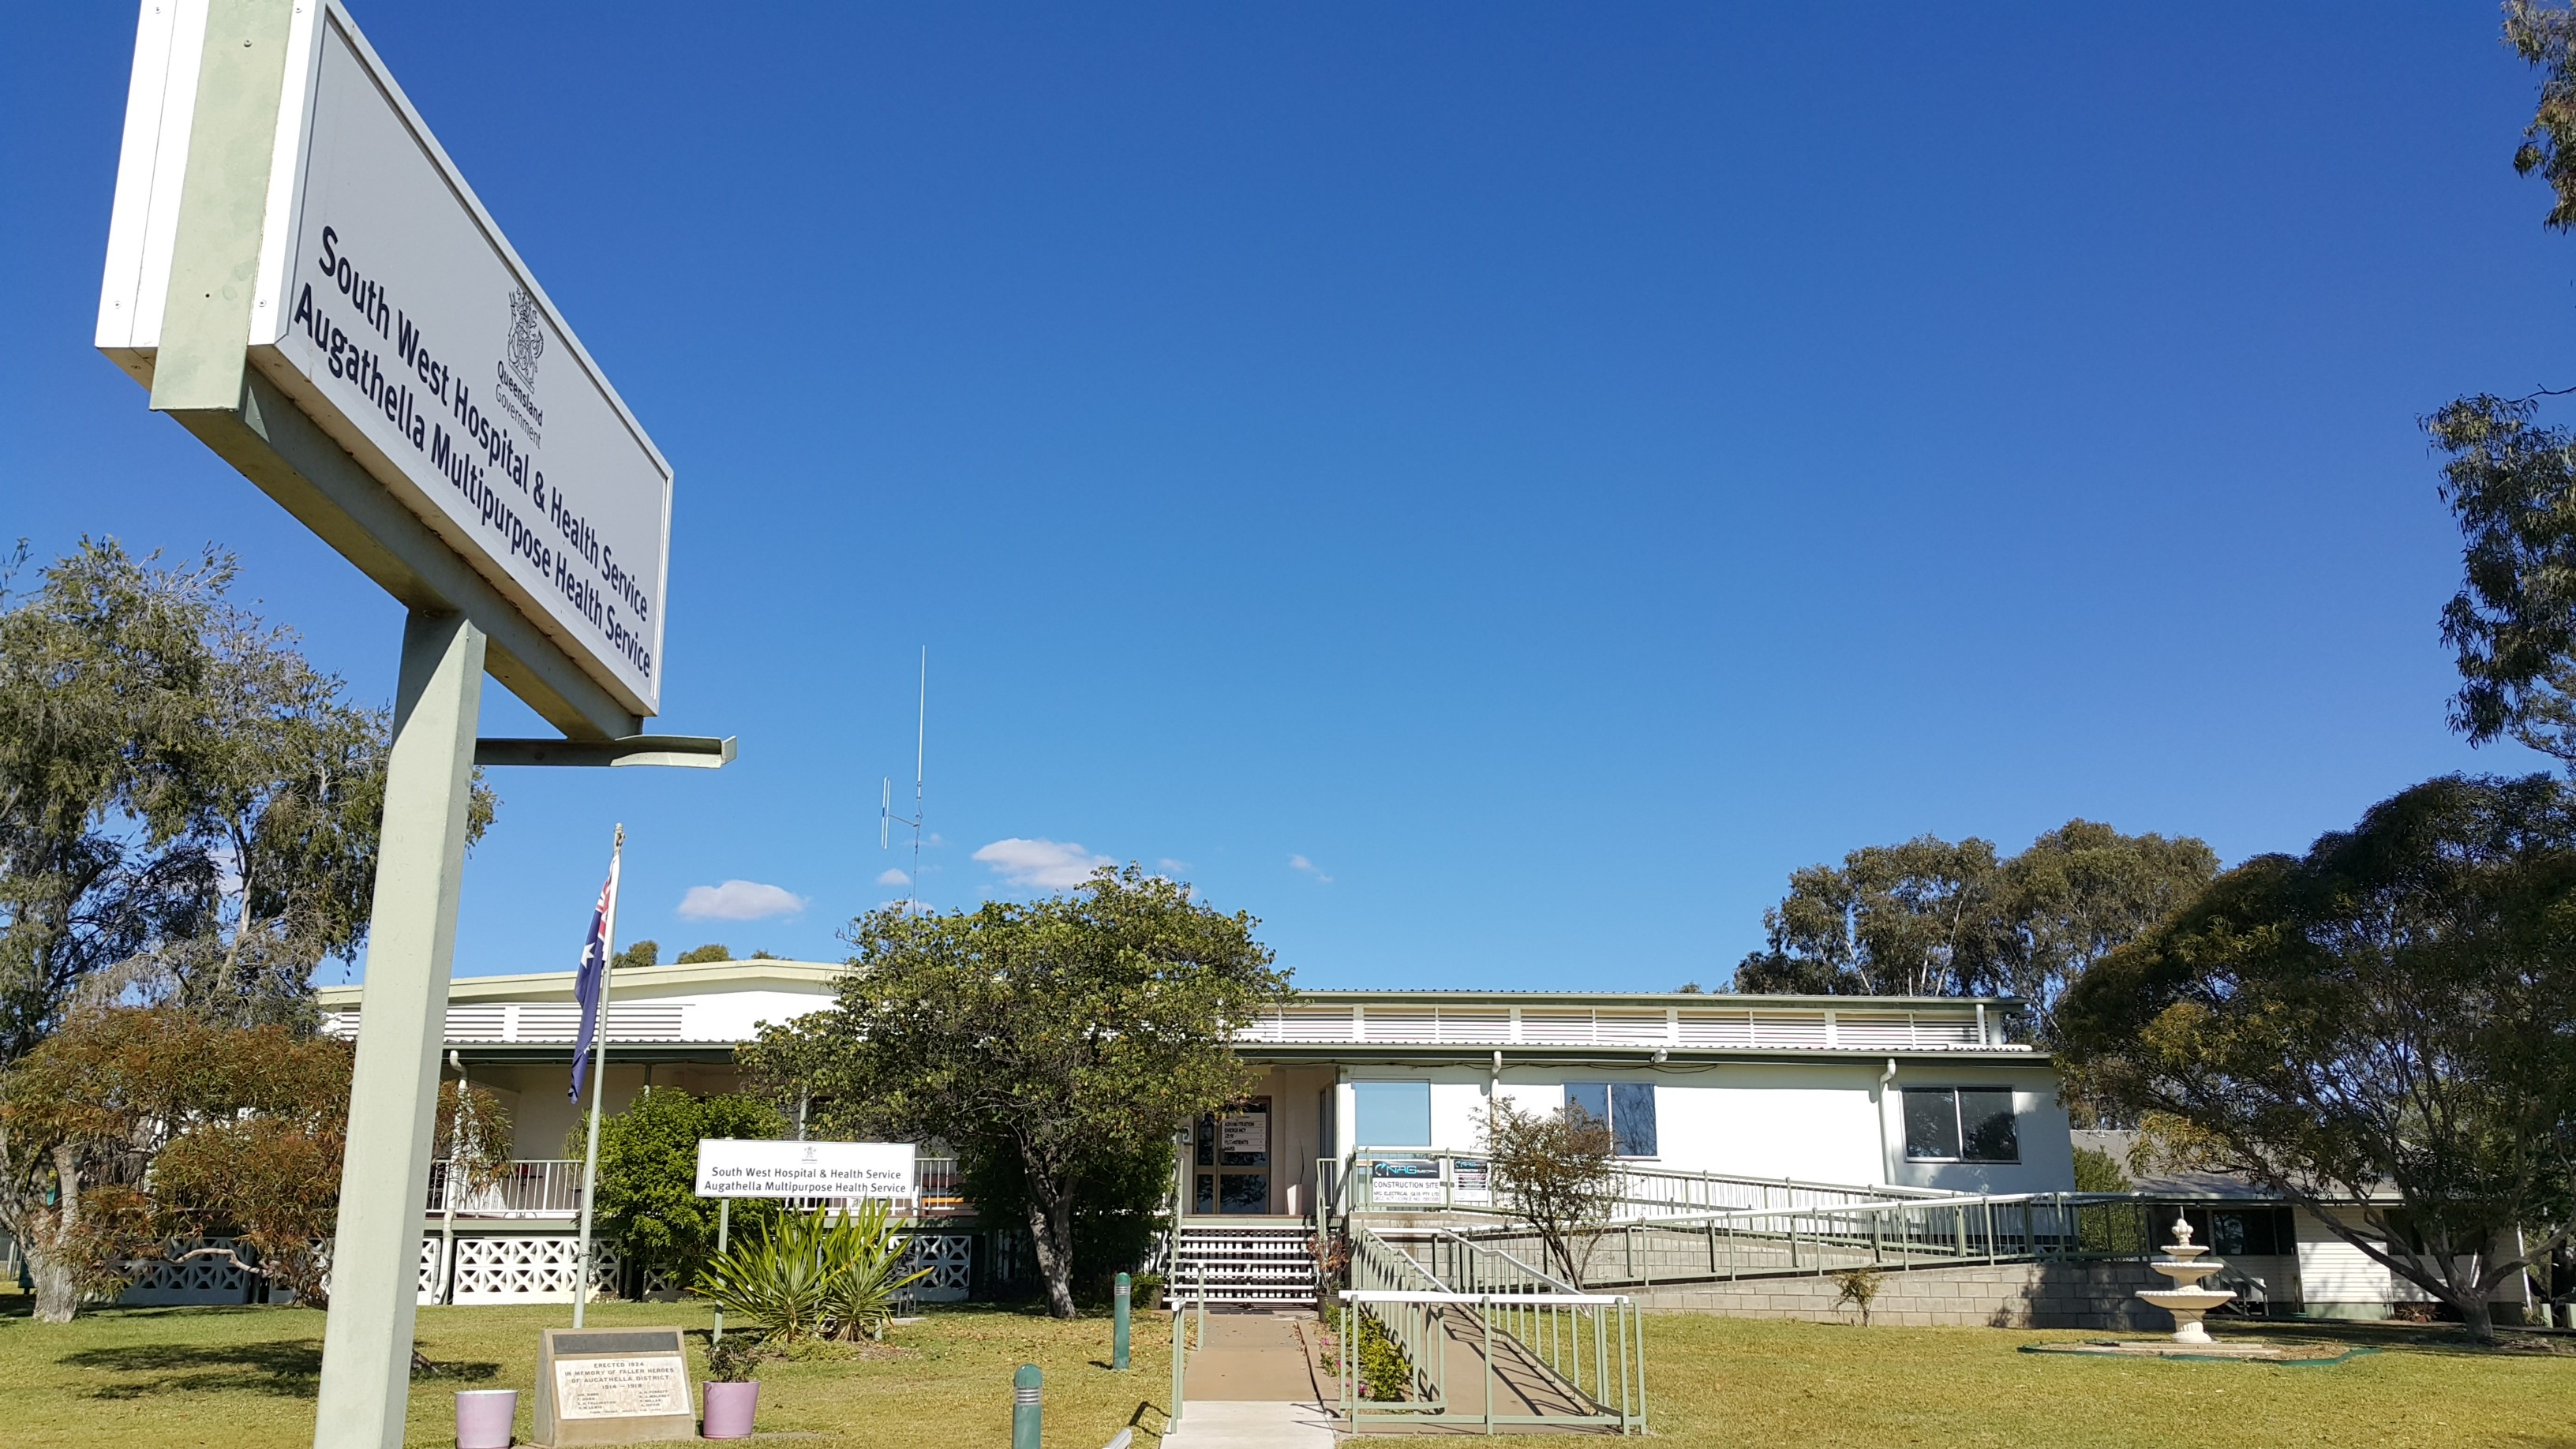 South West Hospital & Health Service – Condition Audits and Electrical Infrastructure Upgrade